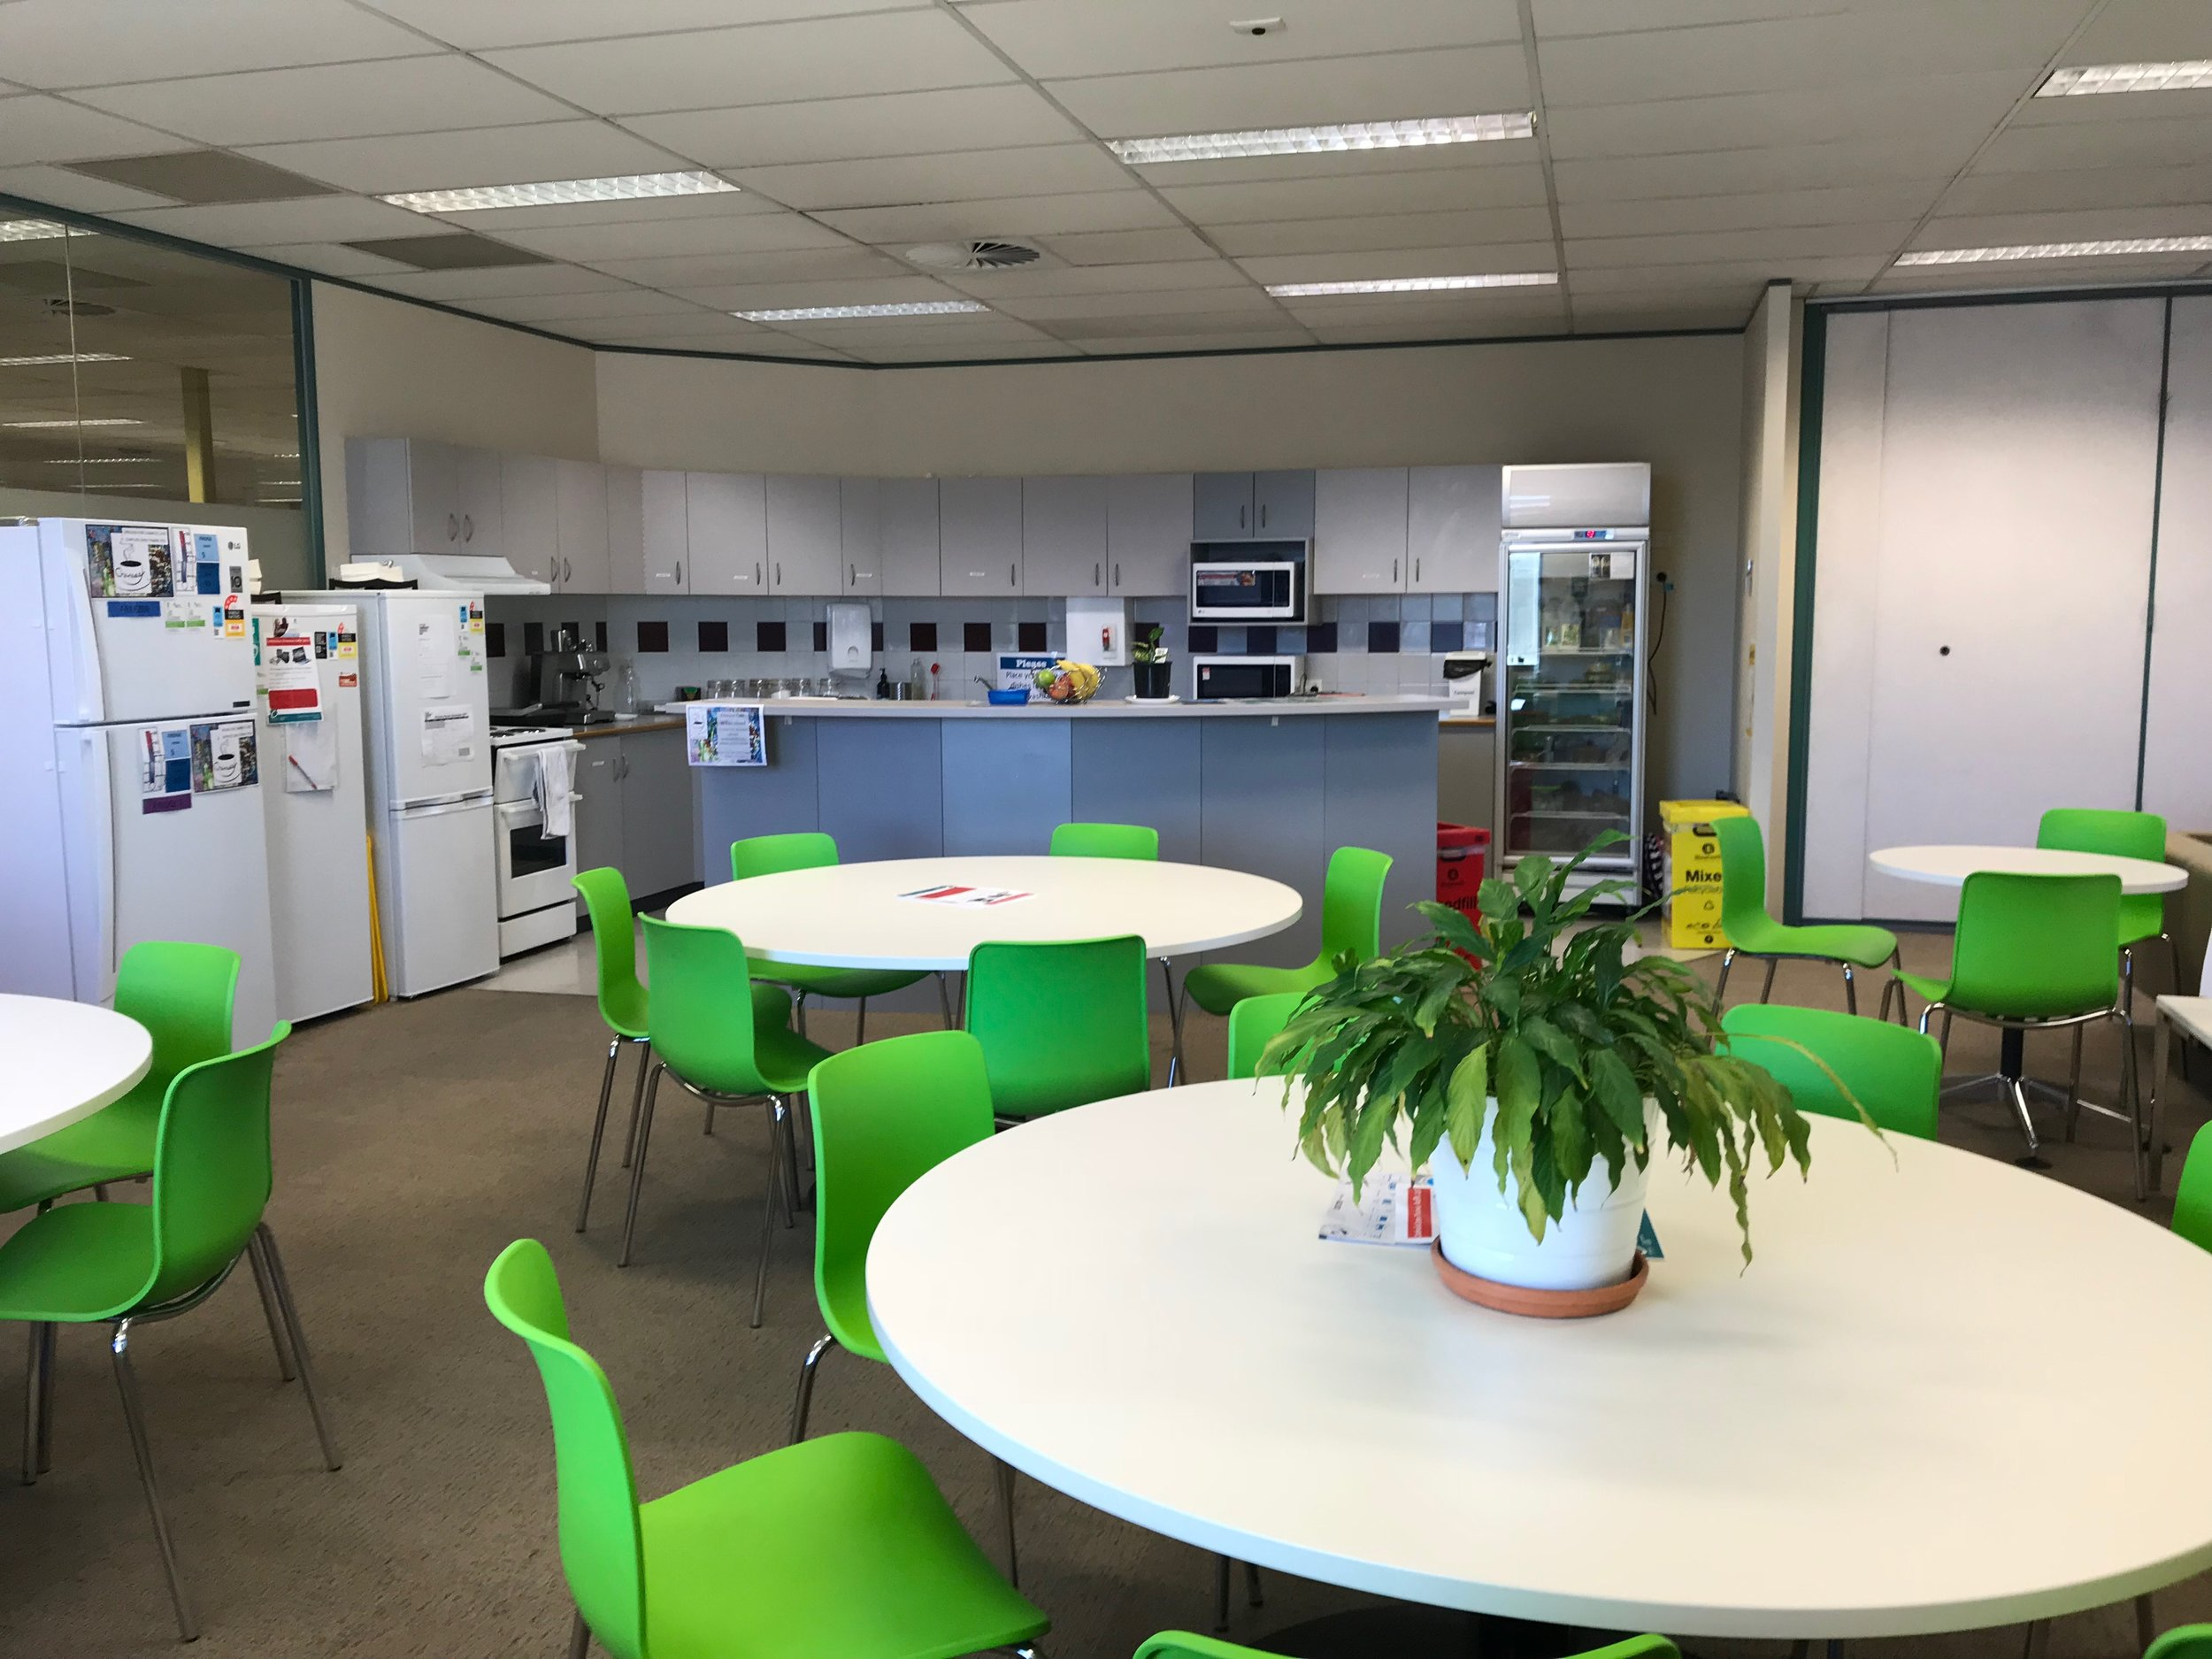 """The common room/kitchen is naturally lit, with plenty of spaces, a good kitchen, and a """"meet the hubsters"""" board."""